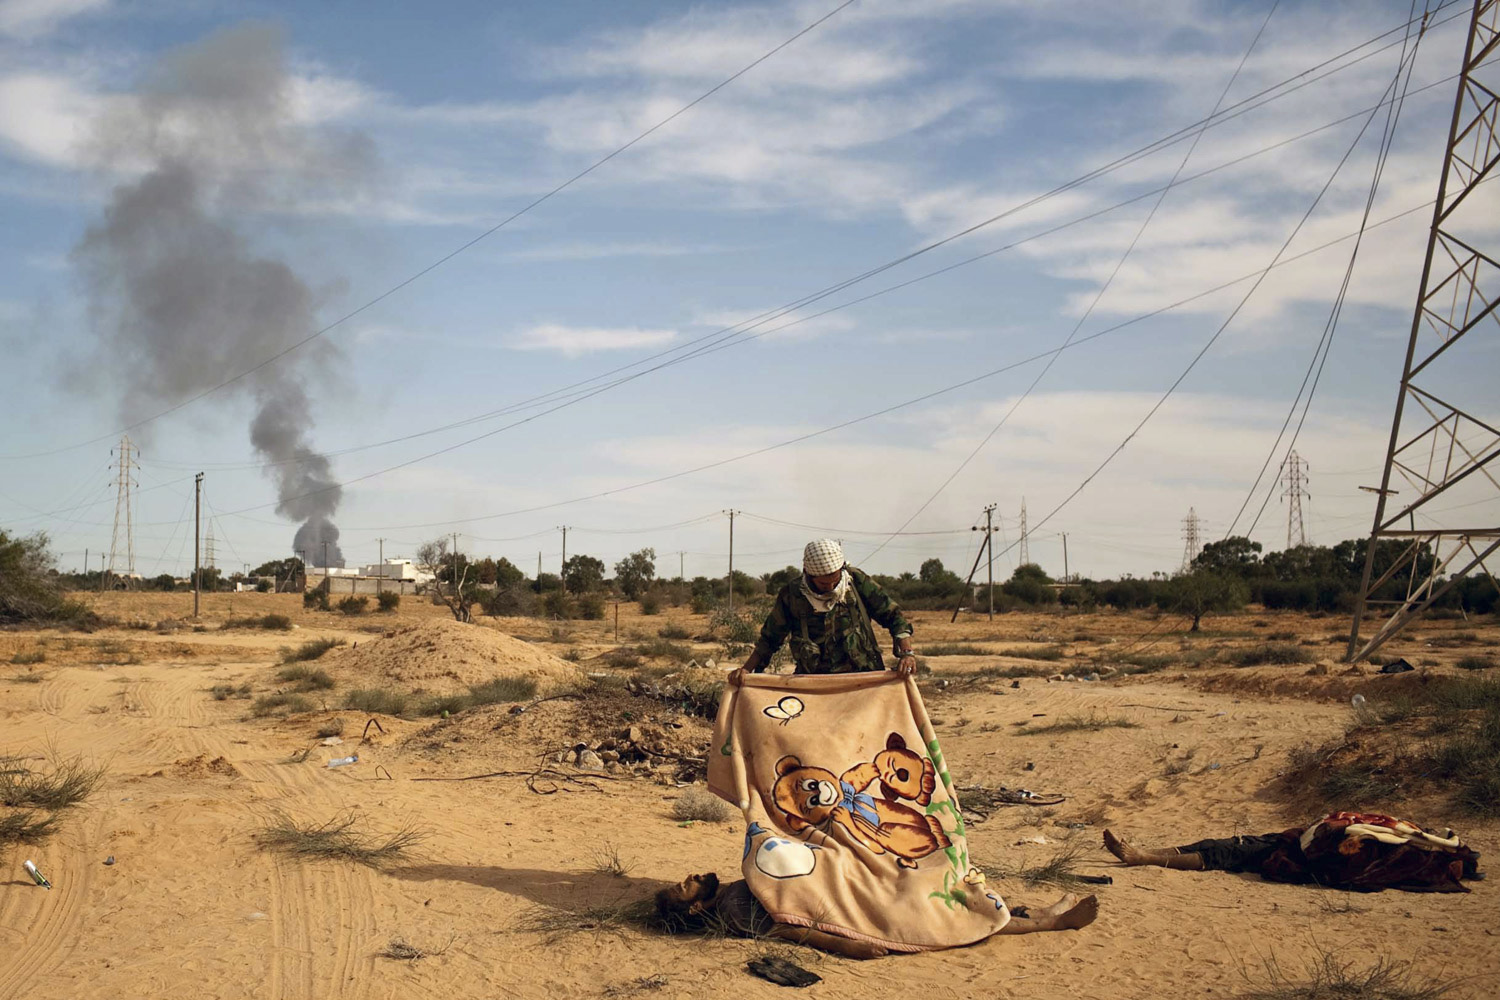 October 21, 2011. A Libyan rebel fighter covers a dead body of an alleged Muammar Gaddafi loyalist, killed by a NATO air strike in outskirts of Sirt, Libya.